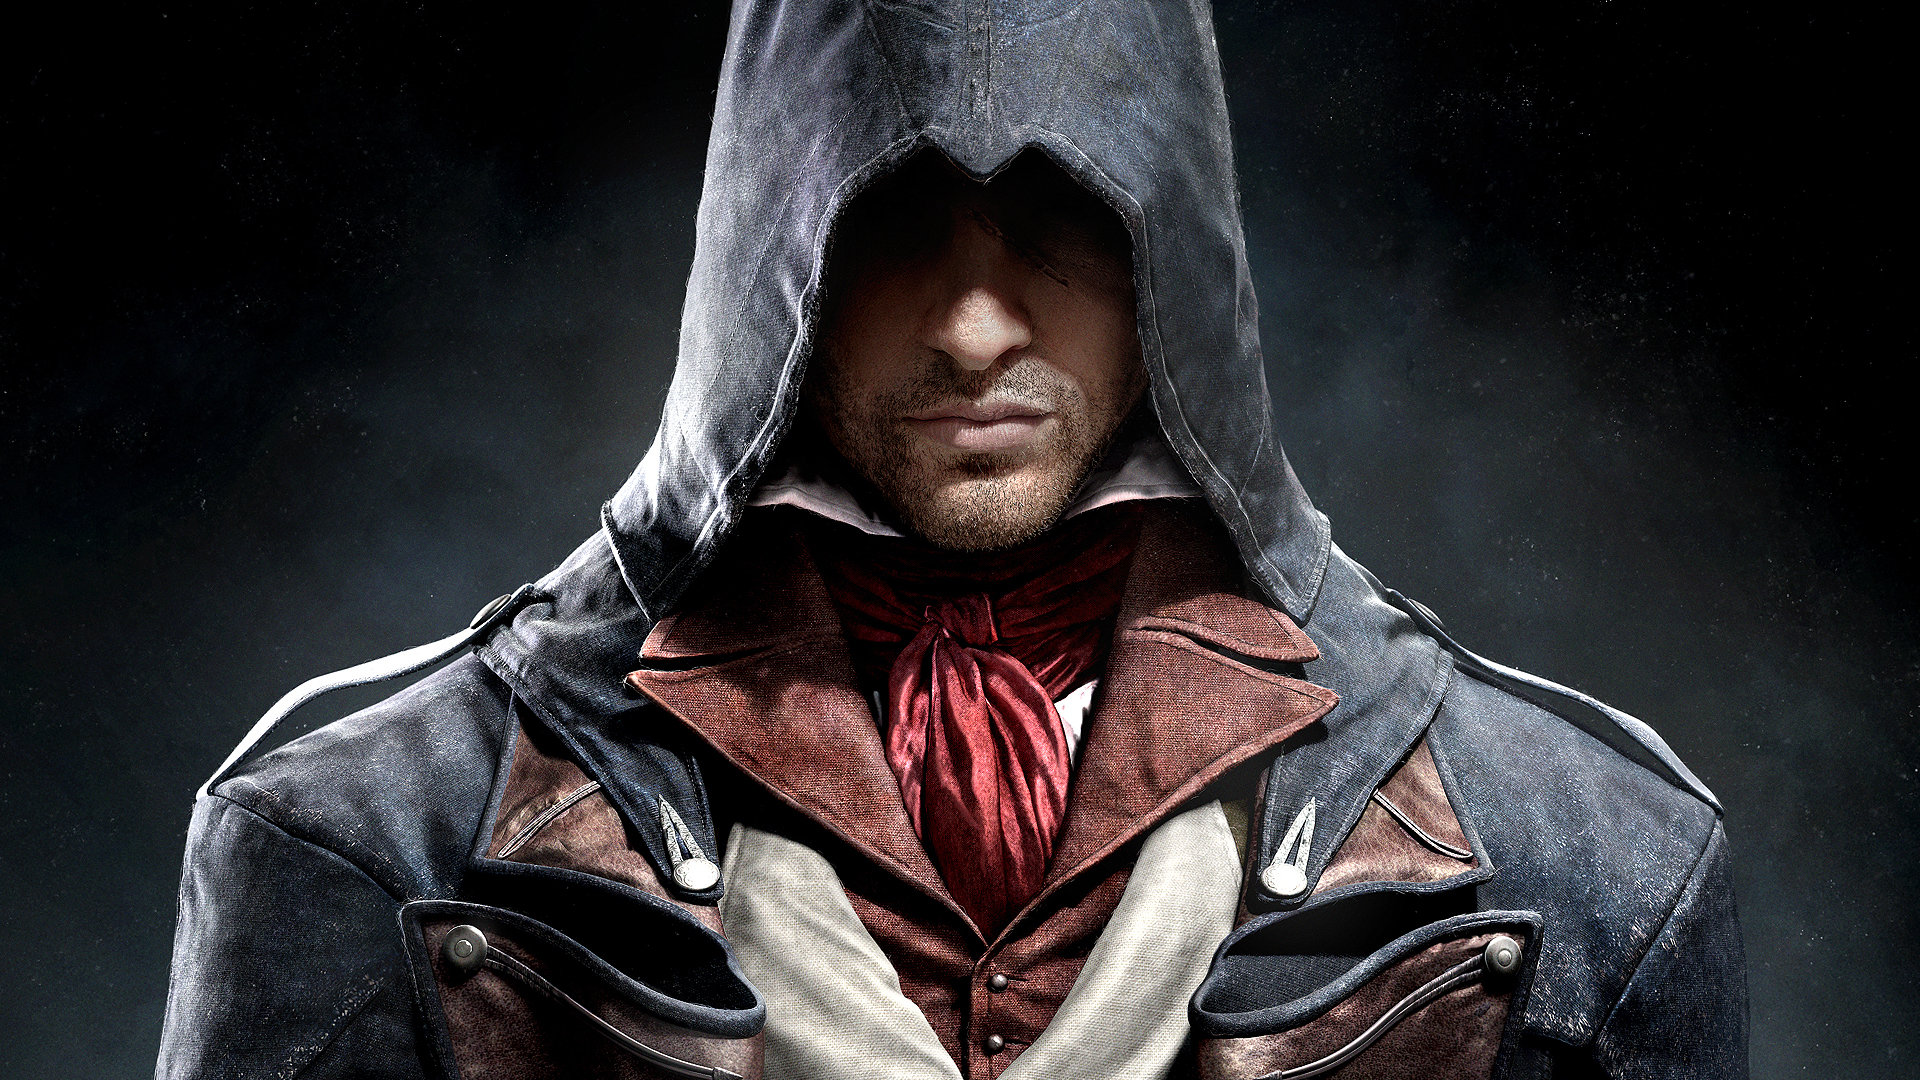 assassins creed unity wallpaper